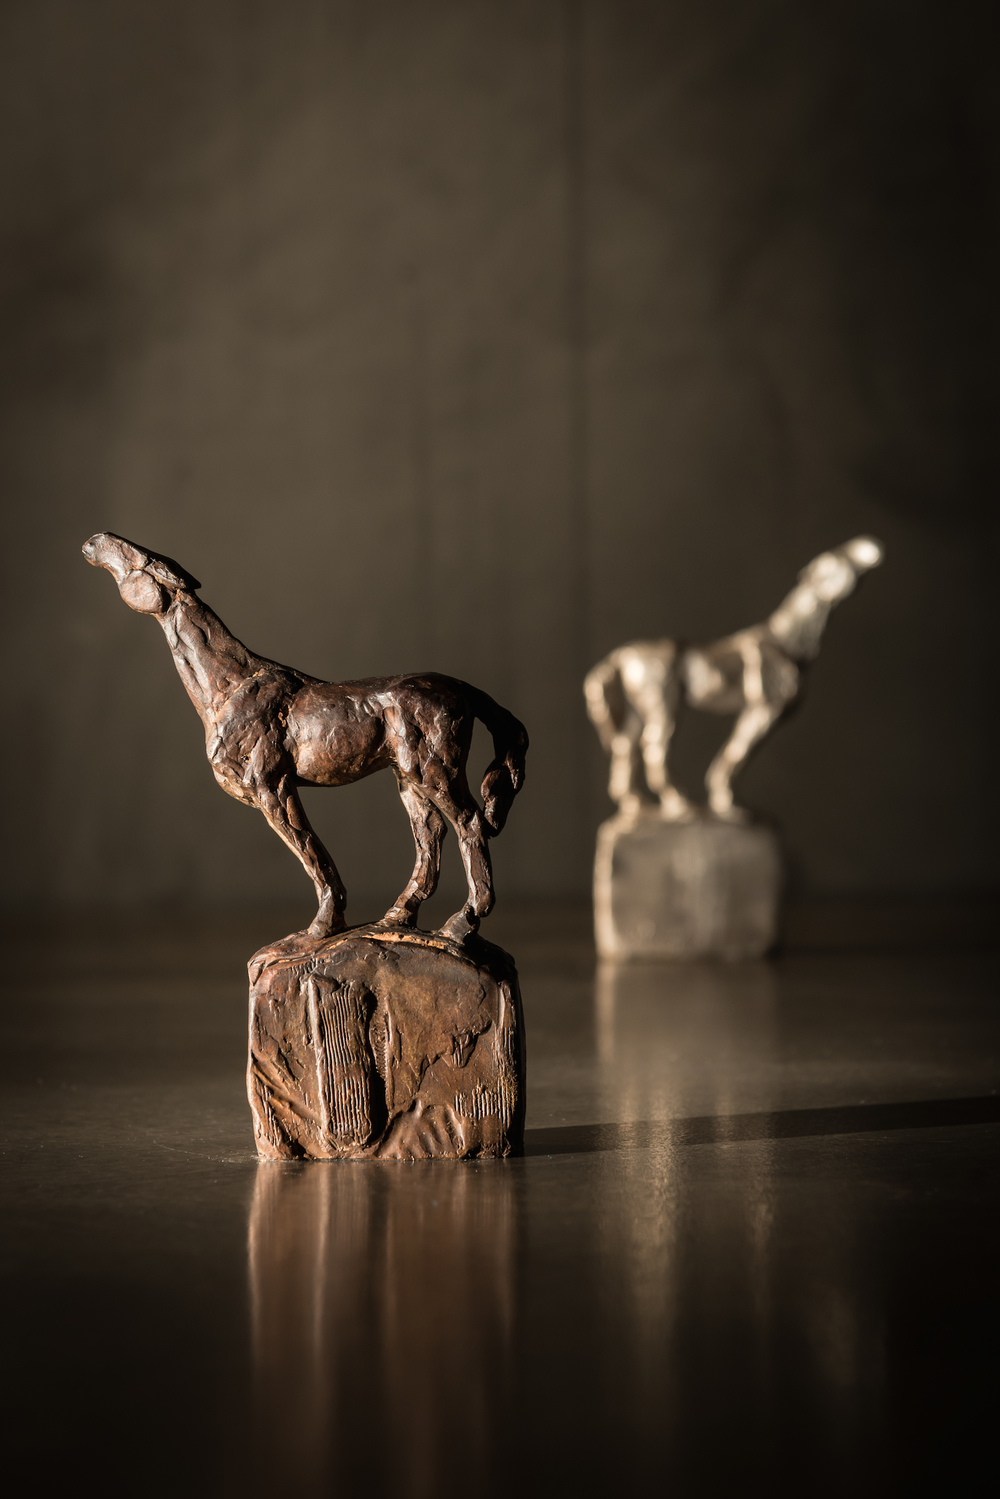 Search  l  Maquette  l  Bronze  l  6x4.5x1  l  $375